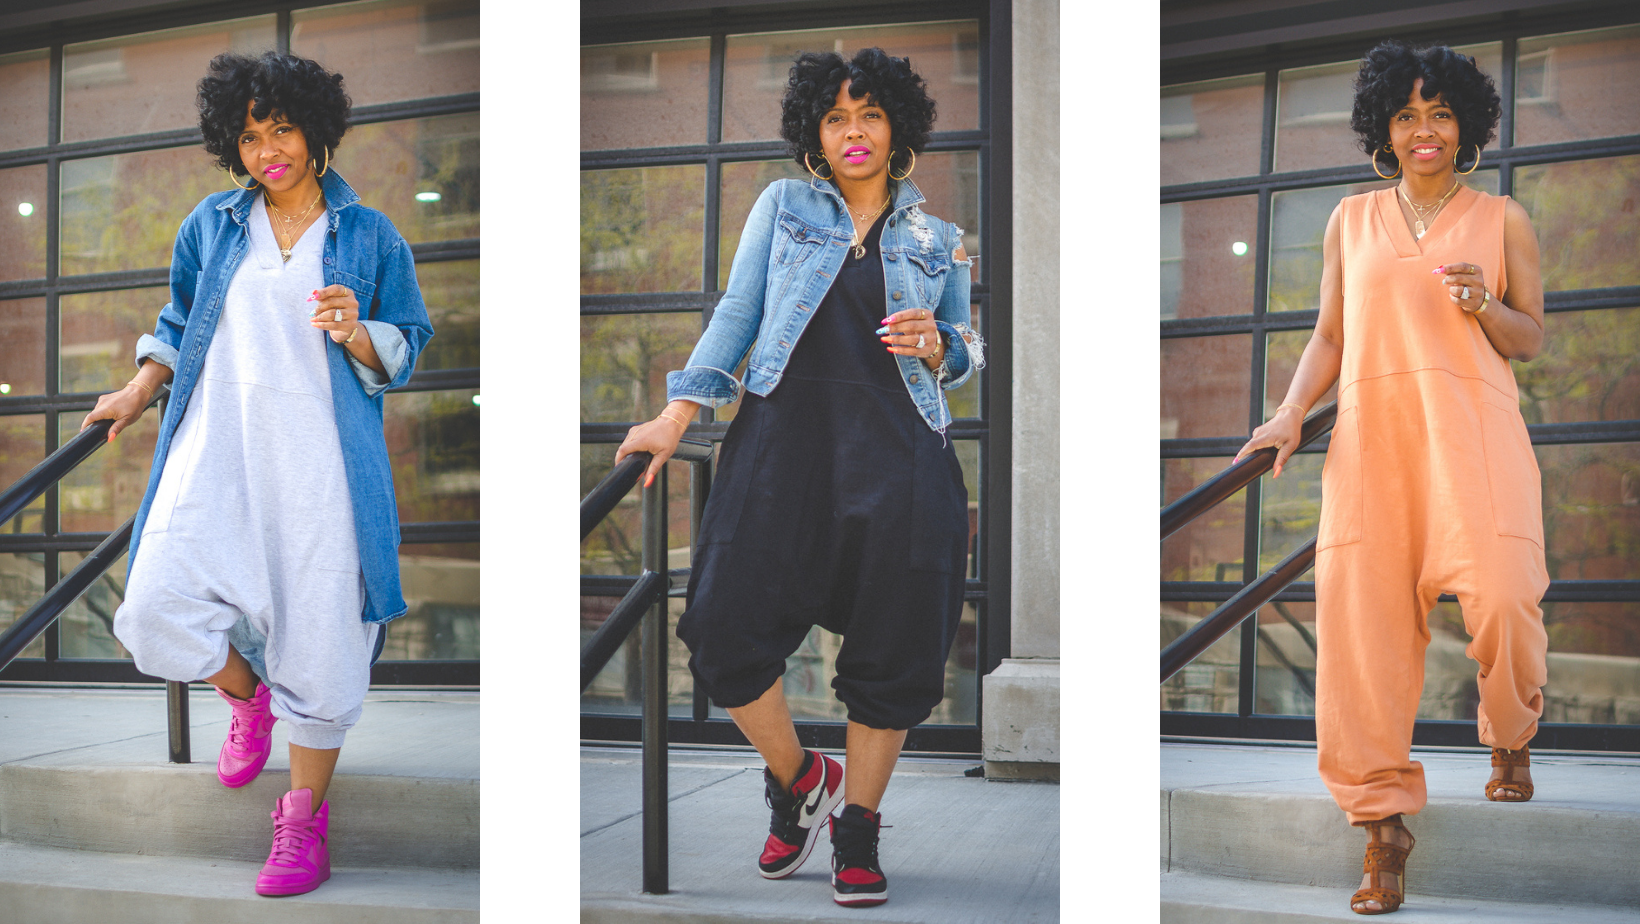 SWEENEE STYLE, SWEENEE ITEM OF THE WEEK, HOW TO WEAR A JUMPSUIT, SPRING OUTFIT IDEA, BLACK GIRLS WHO BLOG